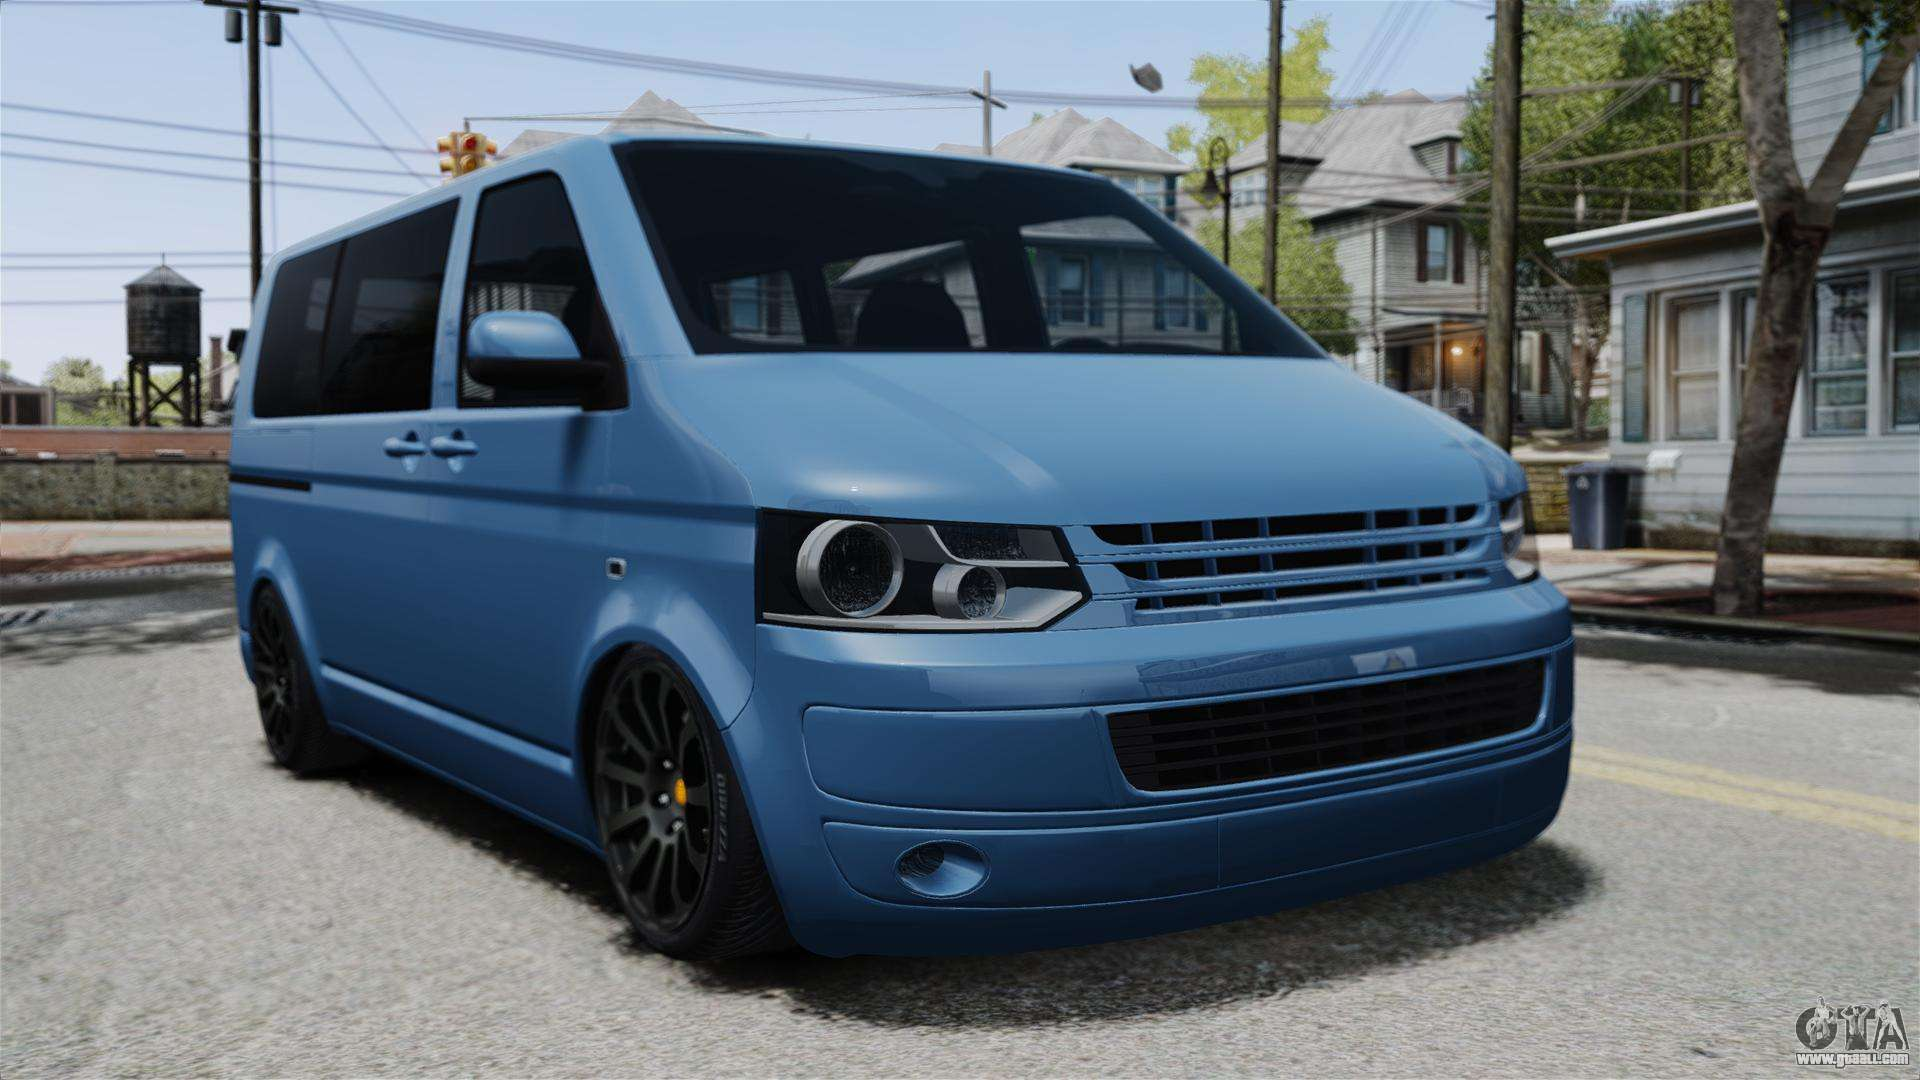 Vw Transporter T5 Volkswagen Transporter T5 2010 For Gta 4